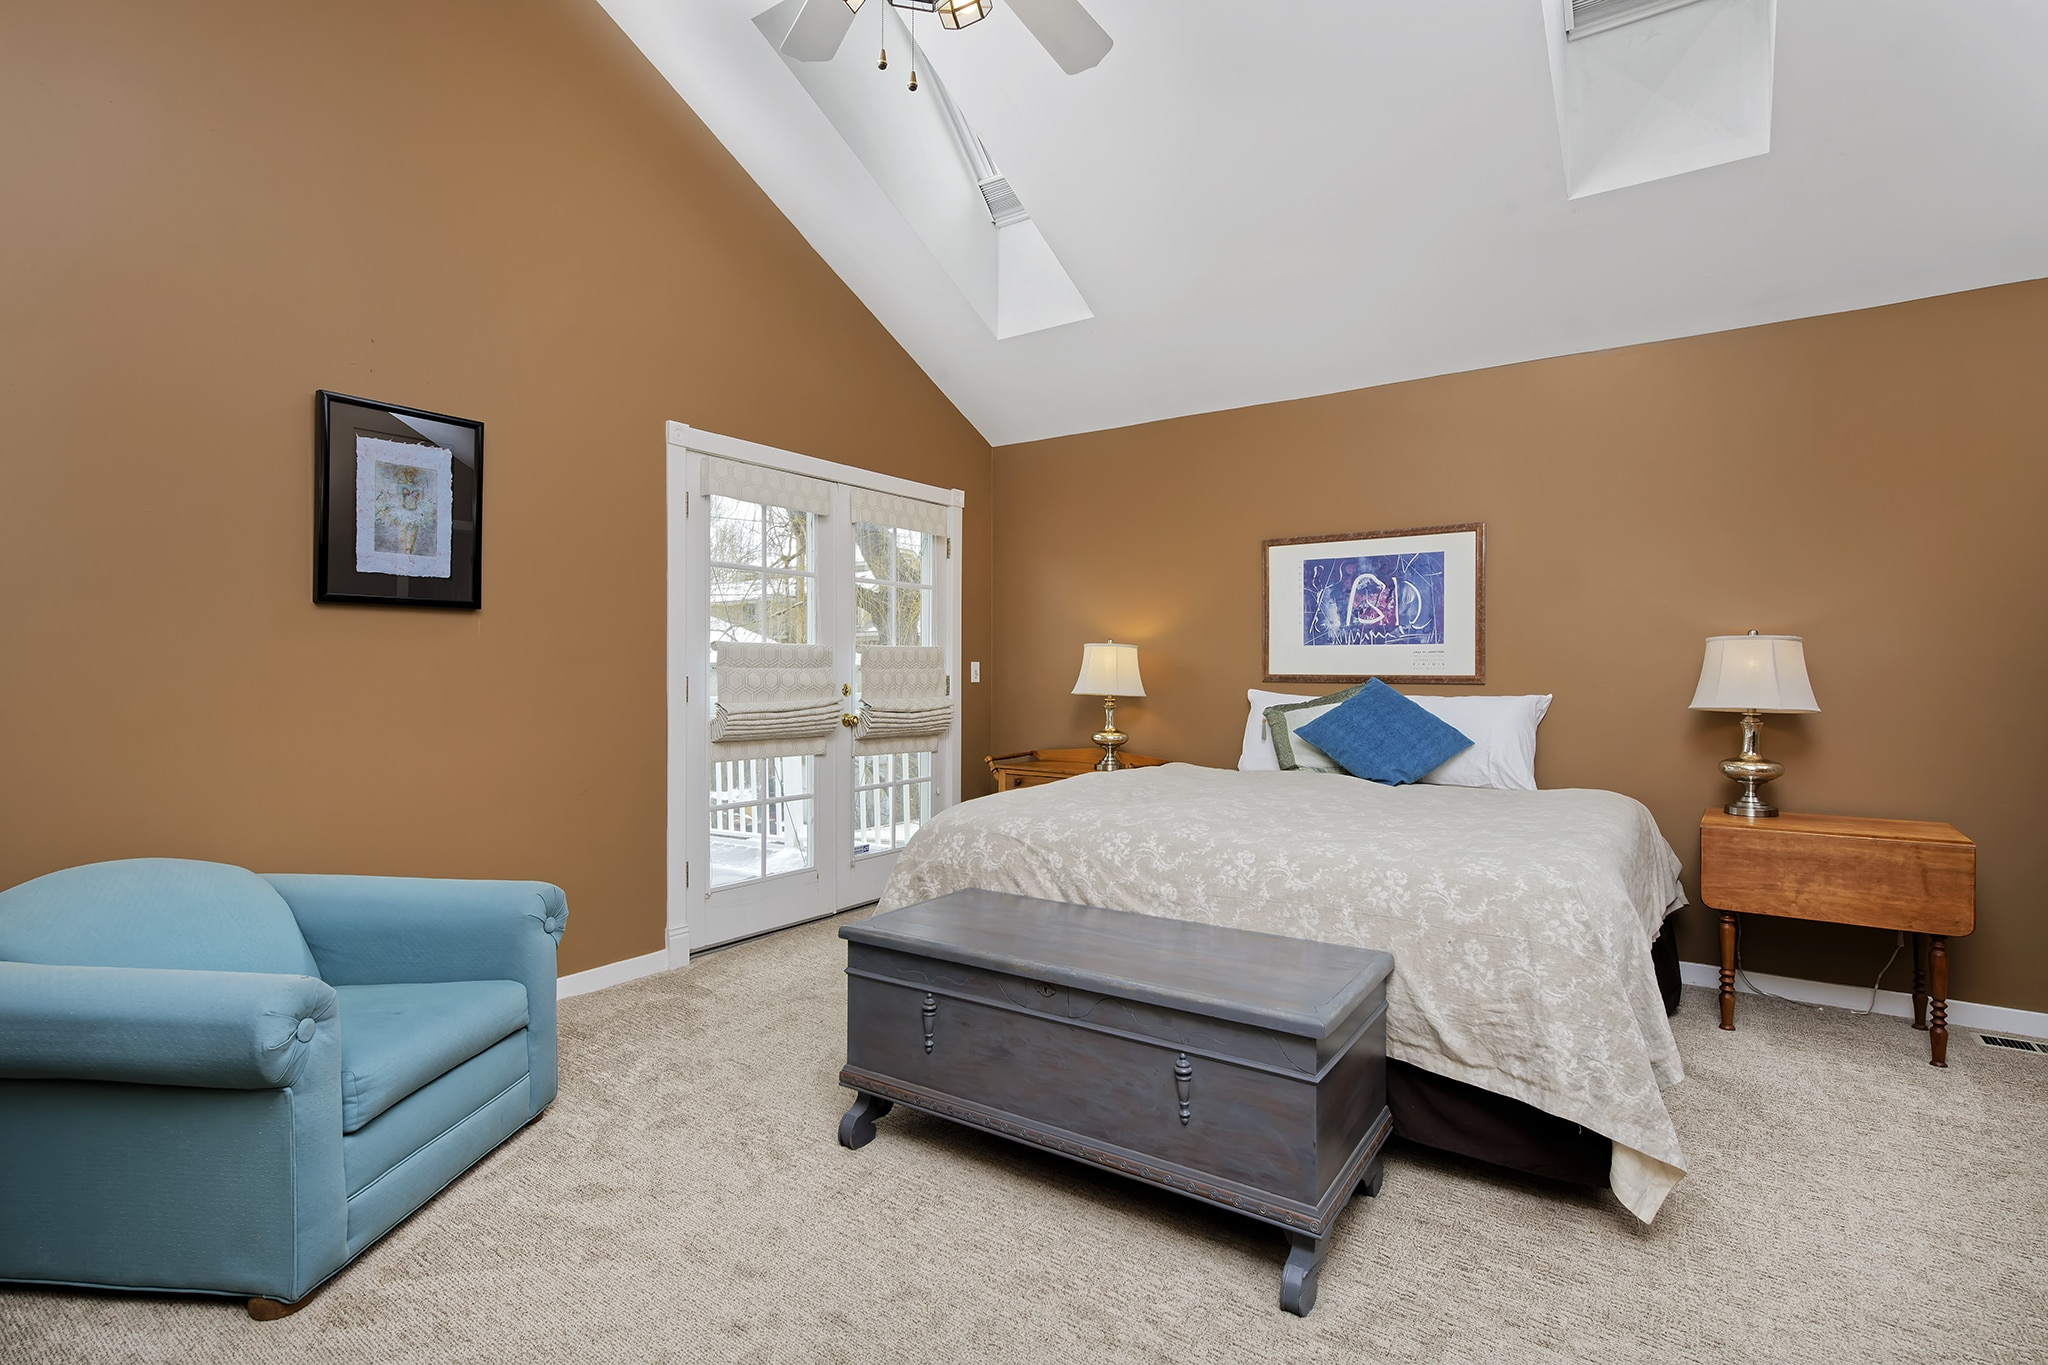 Washington Park Victorian Home, Master Bedroom With Vaulted Ceilings and Brown Walls